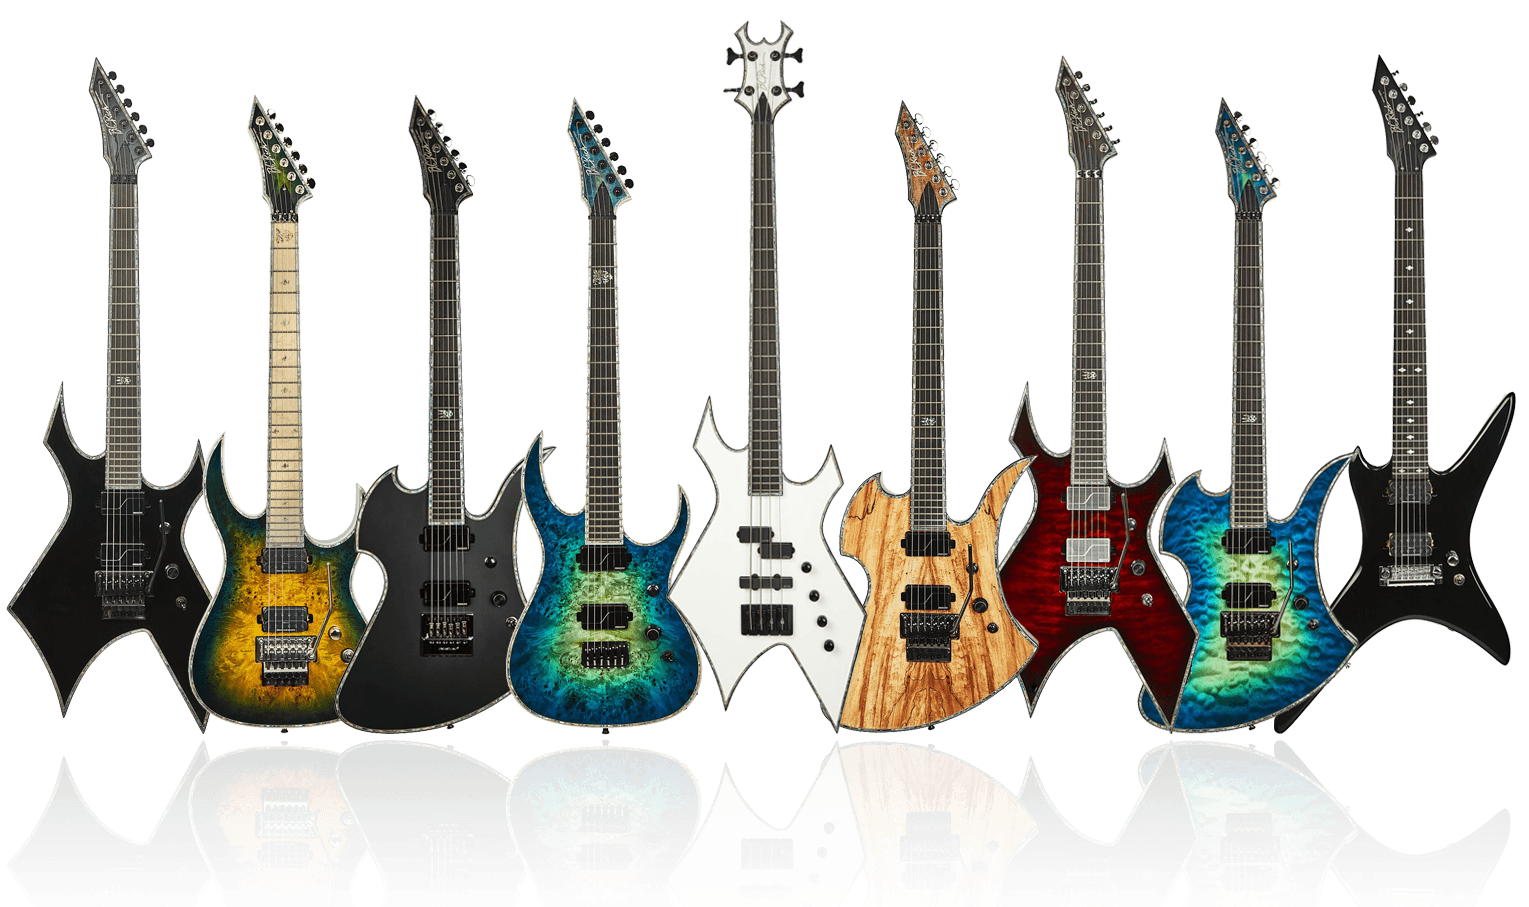 bcr_home_guitars_final.png